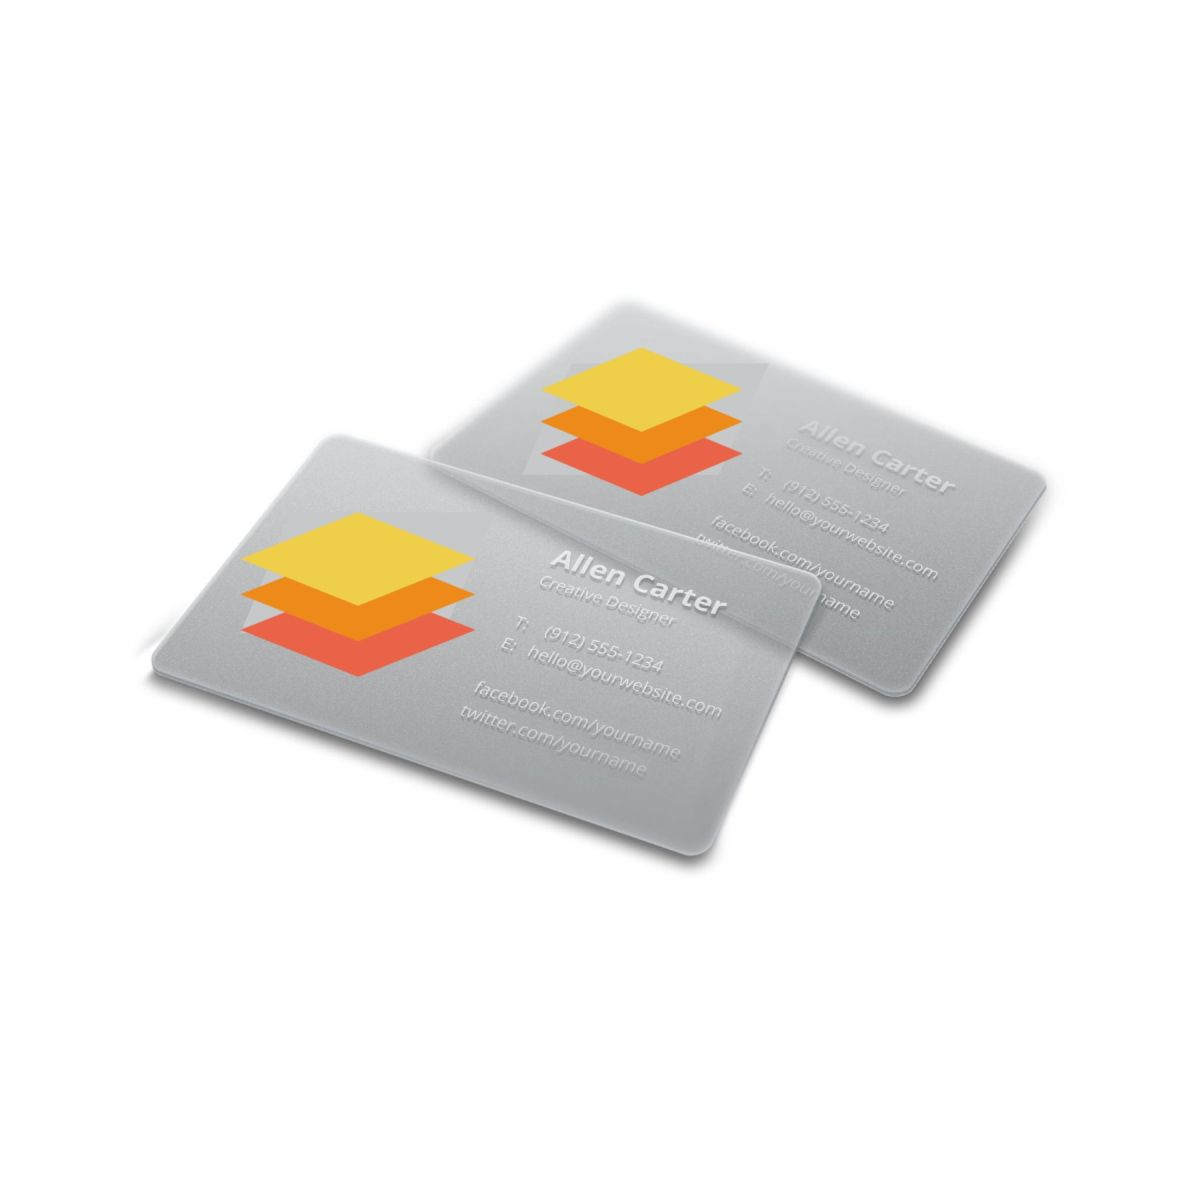 Frosted Plastic Business Cards   Qualita Print